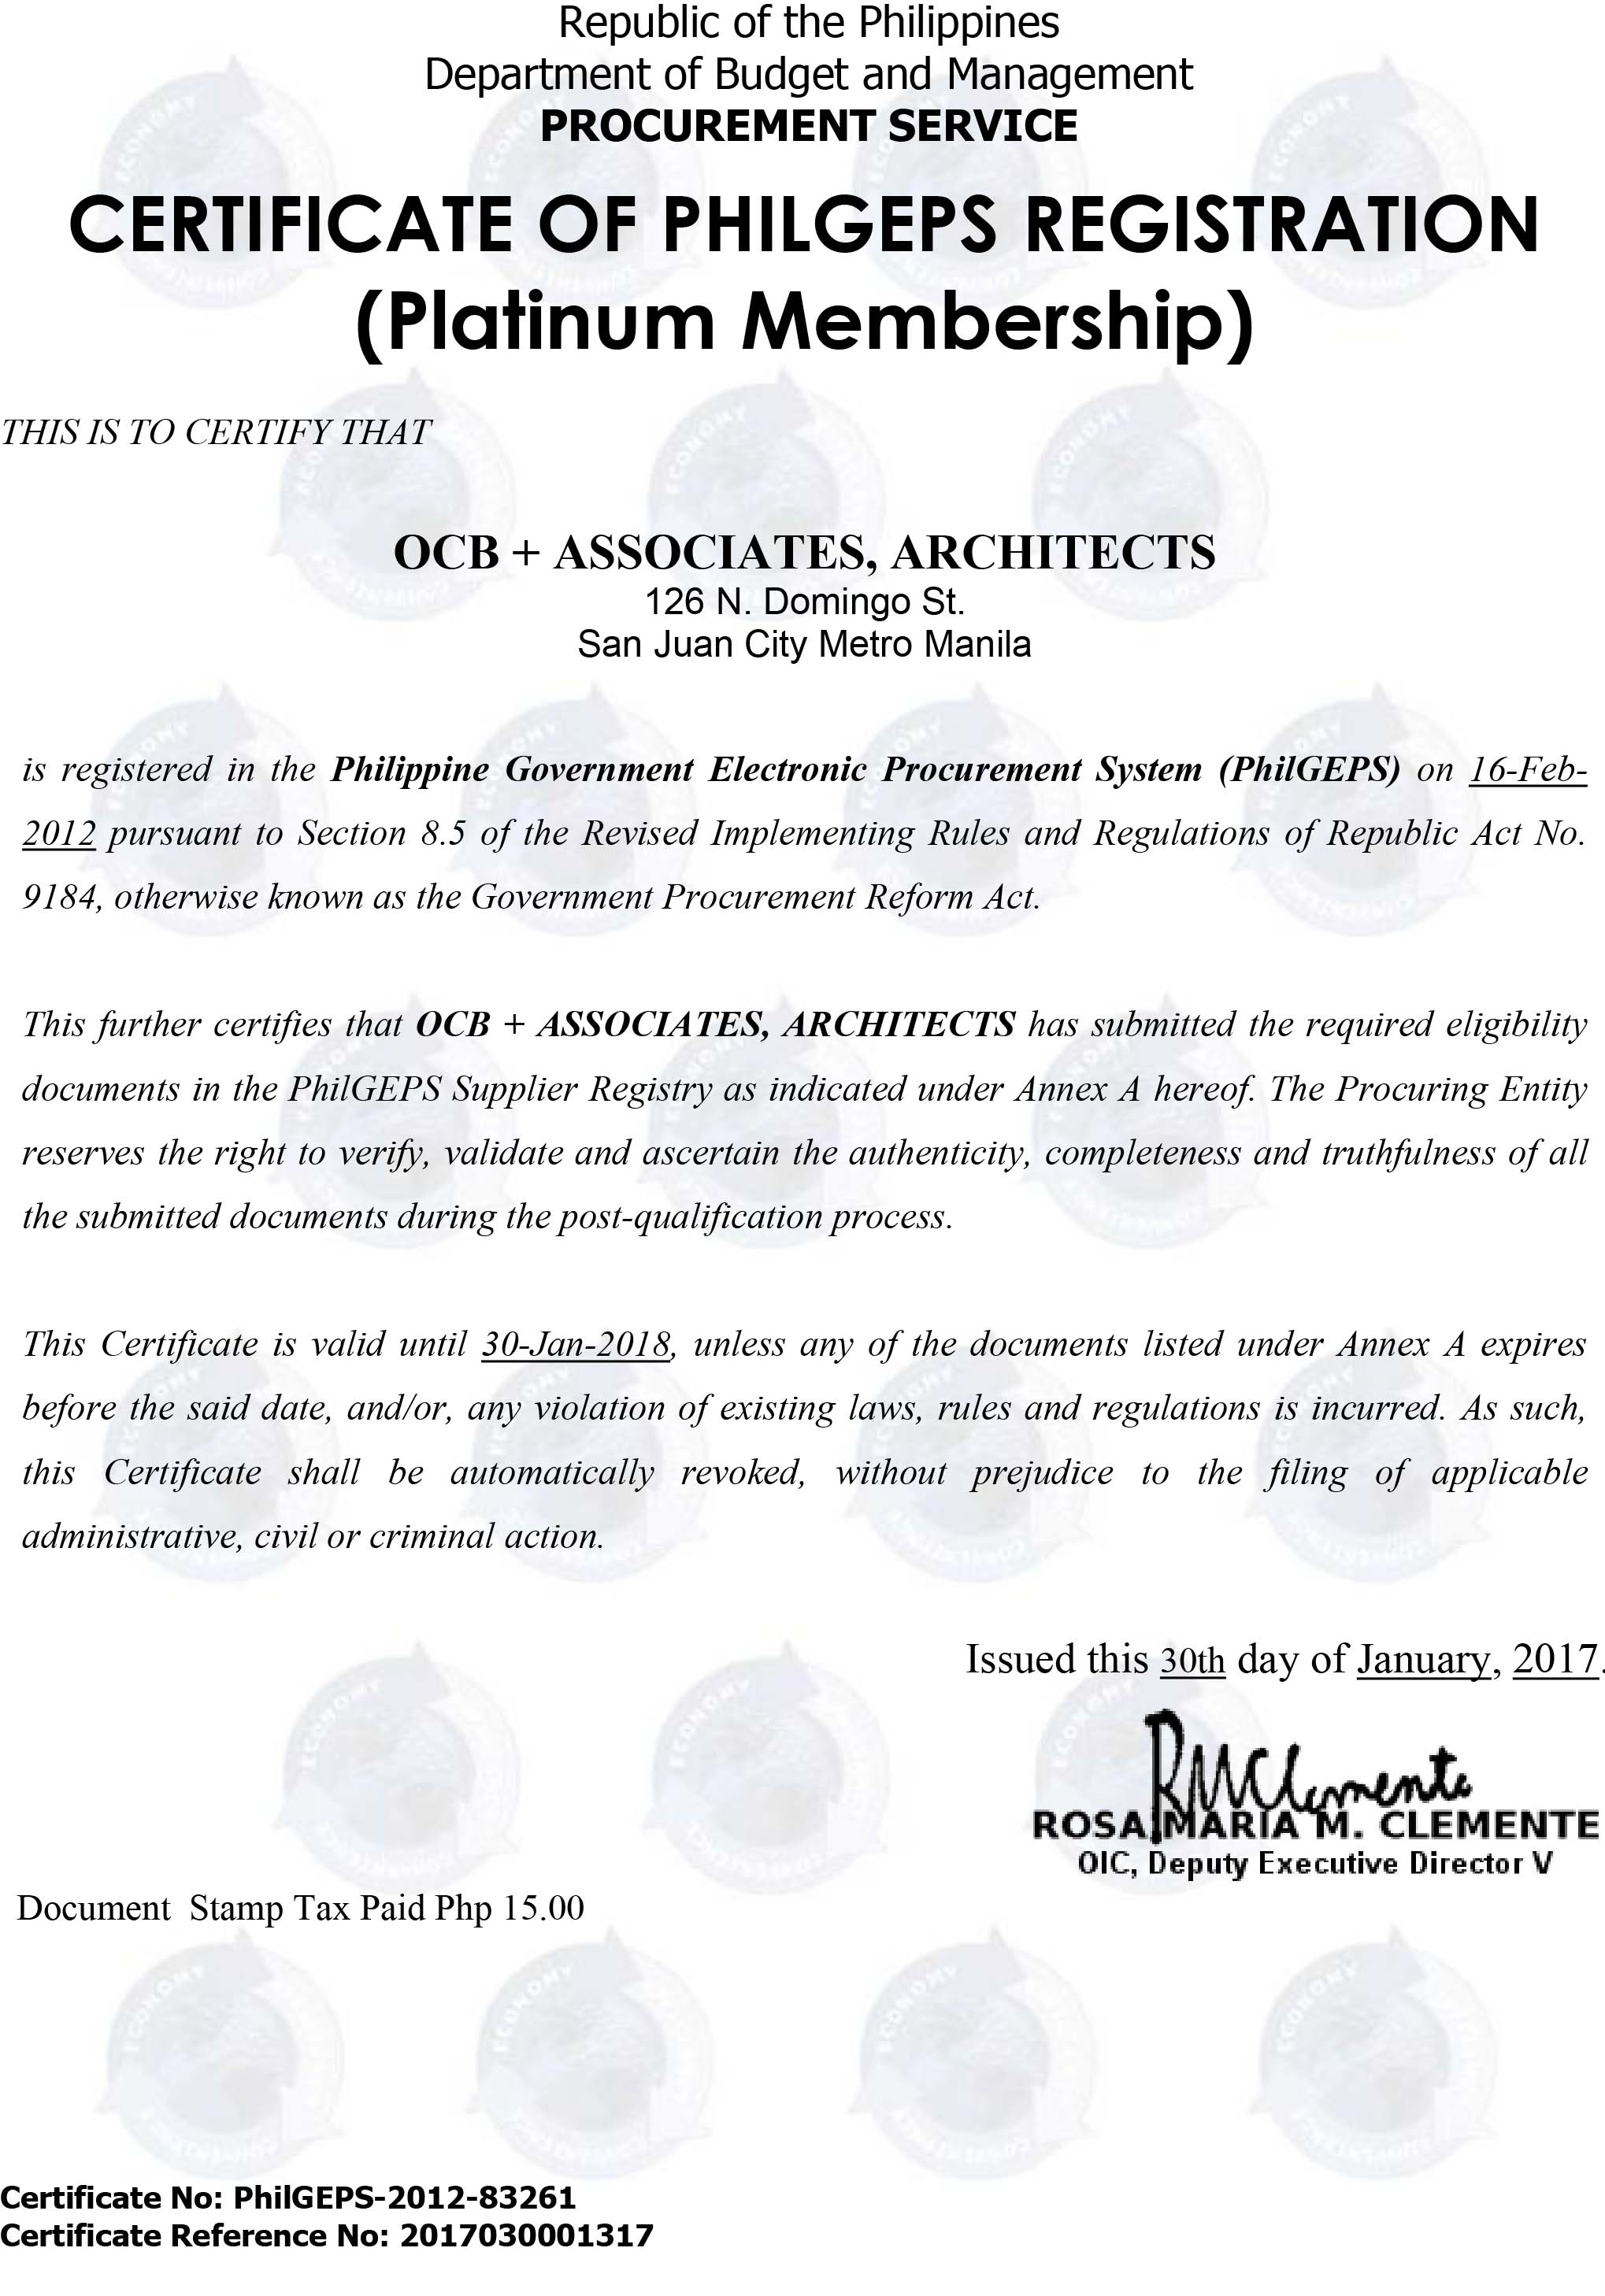 PHILGEPS certificate